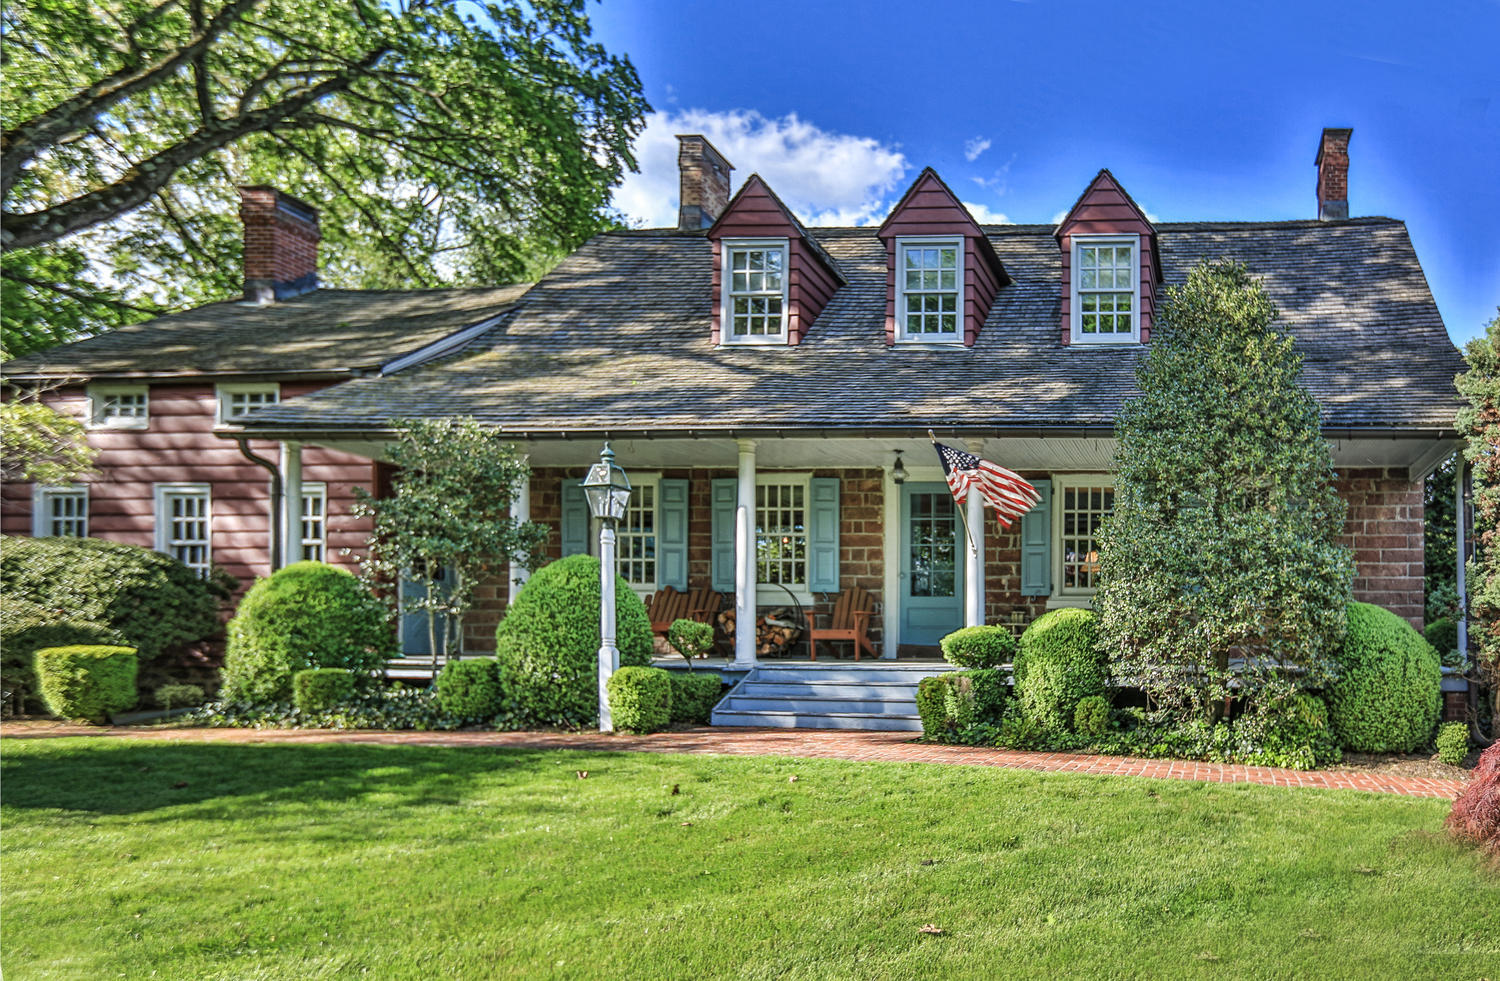 Park ridge colonial home for sale 639 000 jeana cowie for Dutch colonial house for sale